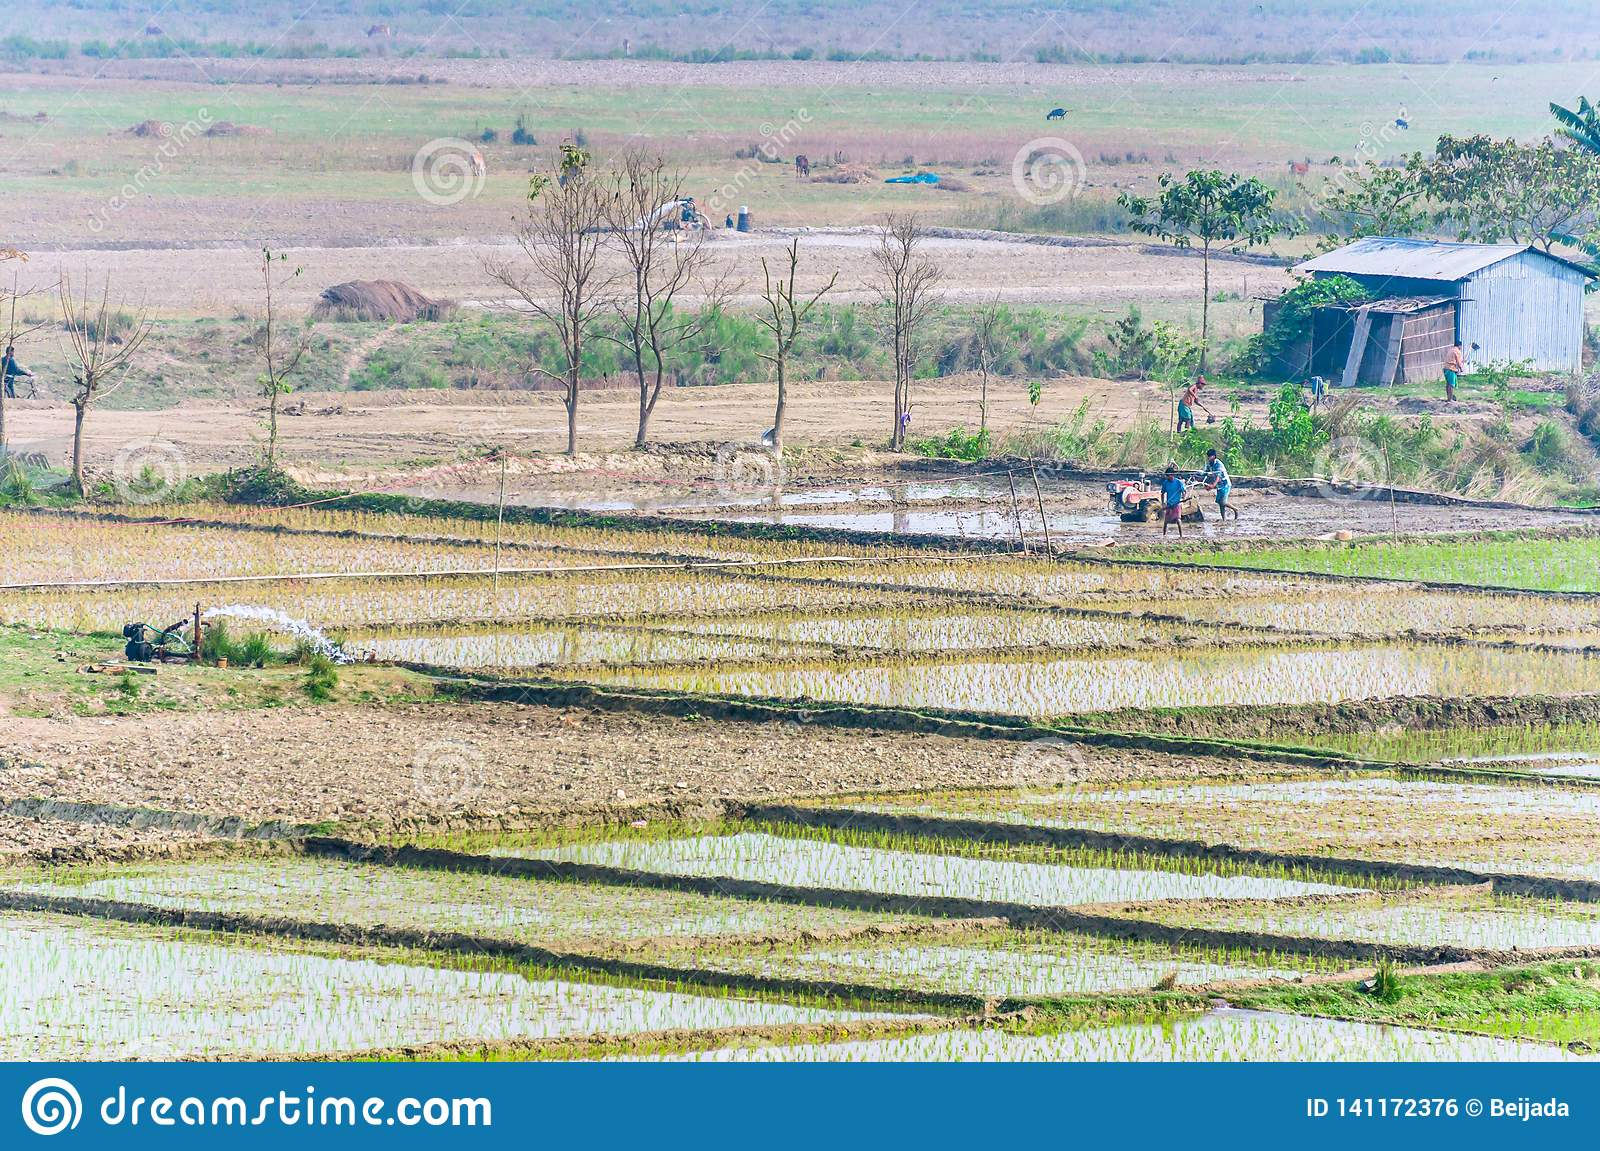 Landscape of Indian rice fields with workers.